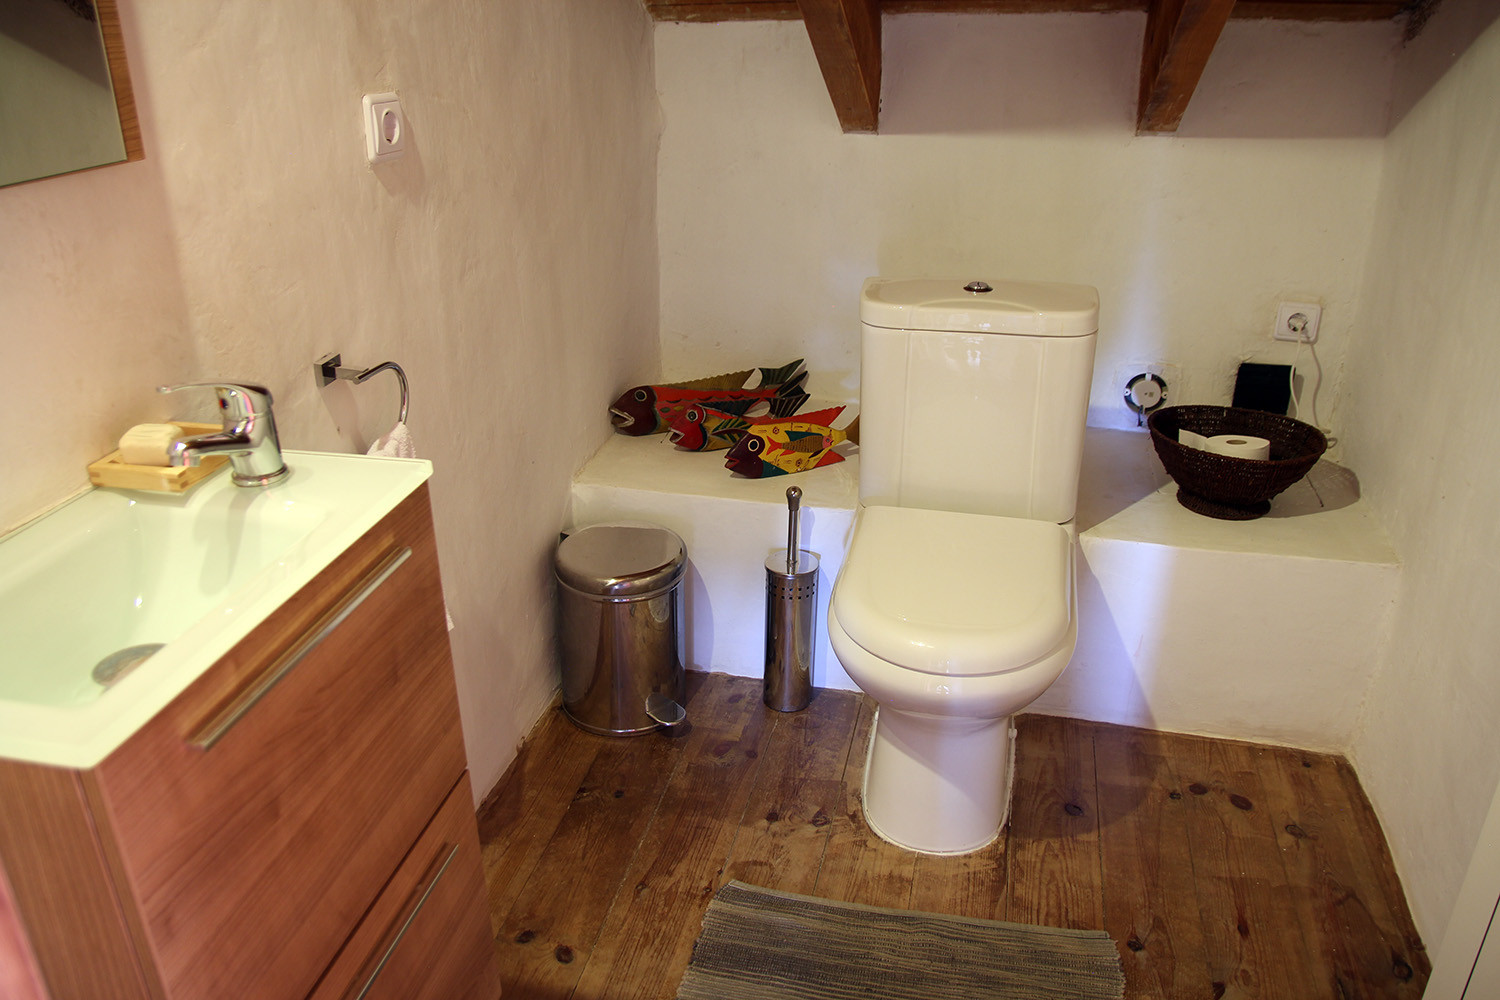 The toilet (first floor)